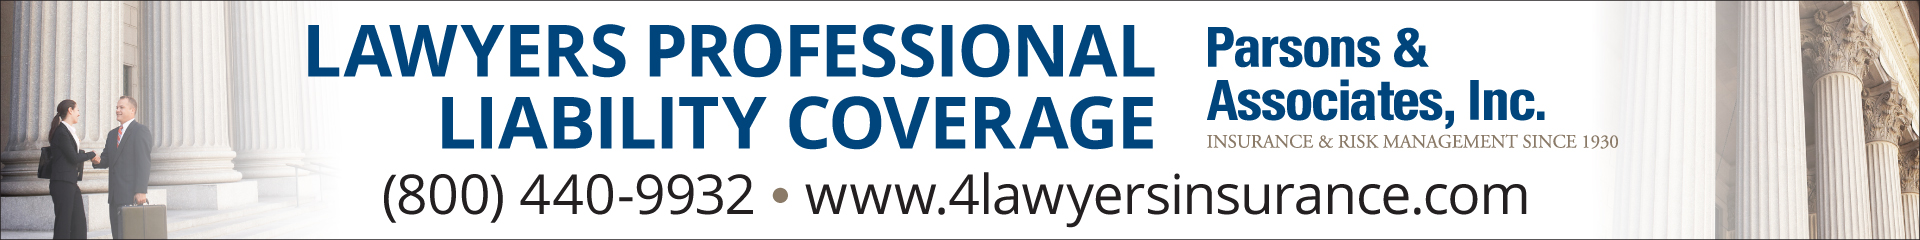 Parsons-Lawyers Professional Liability Coverage